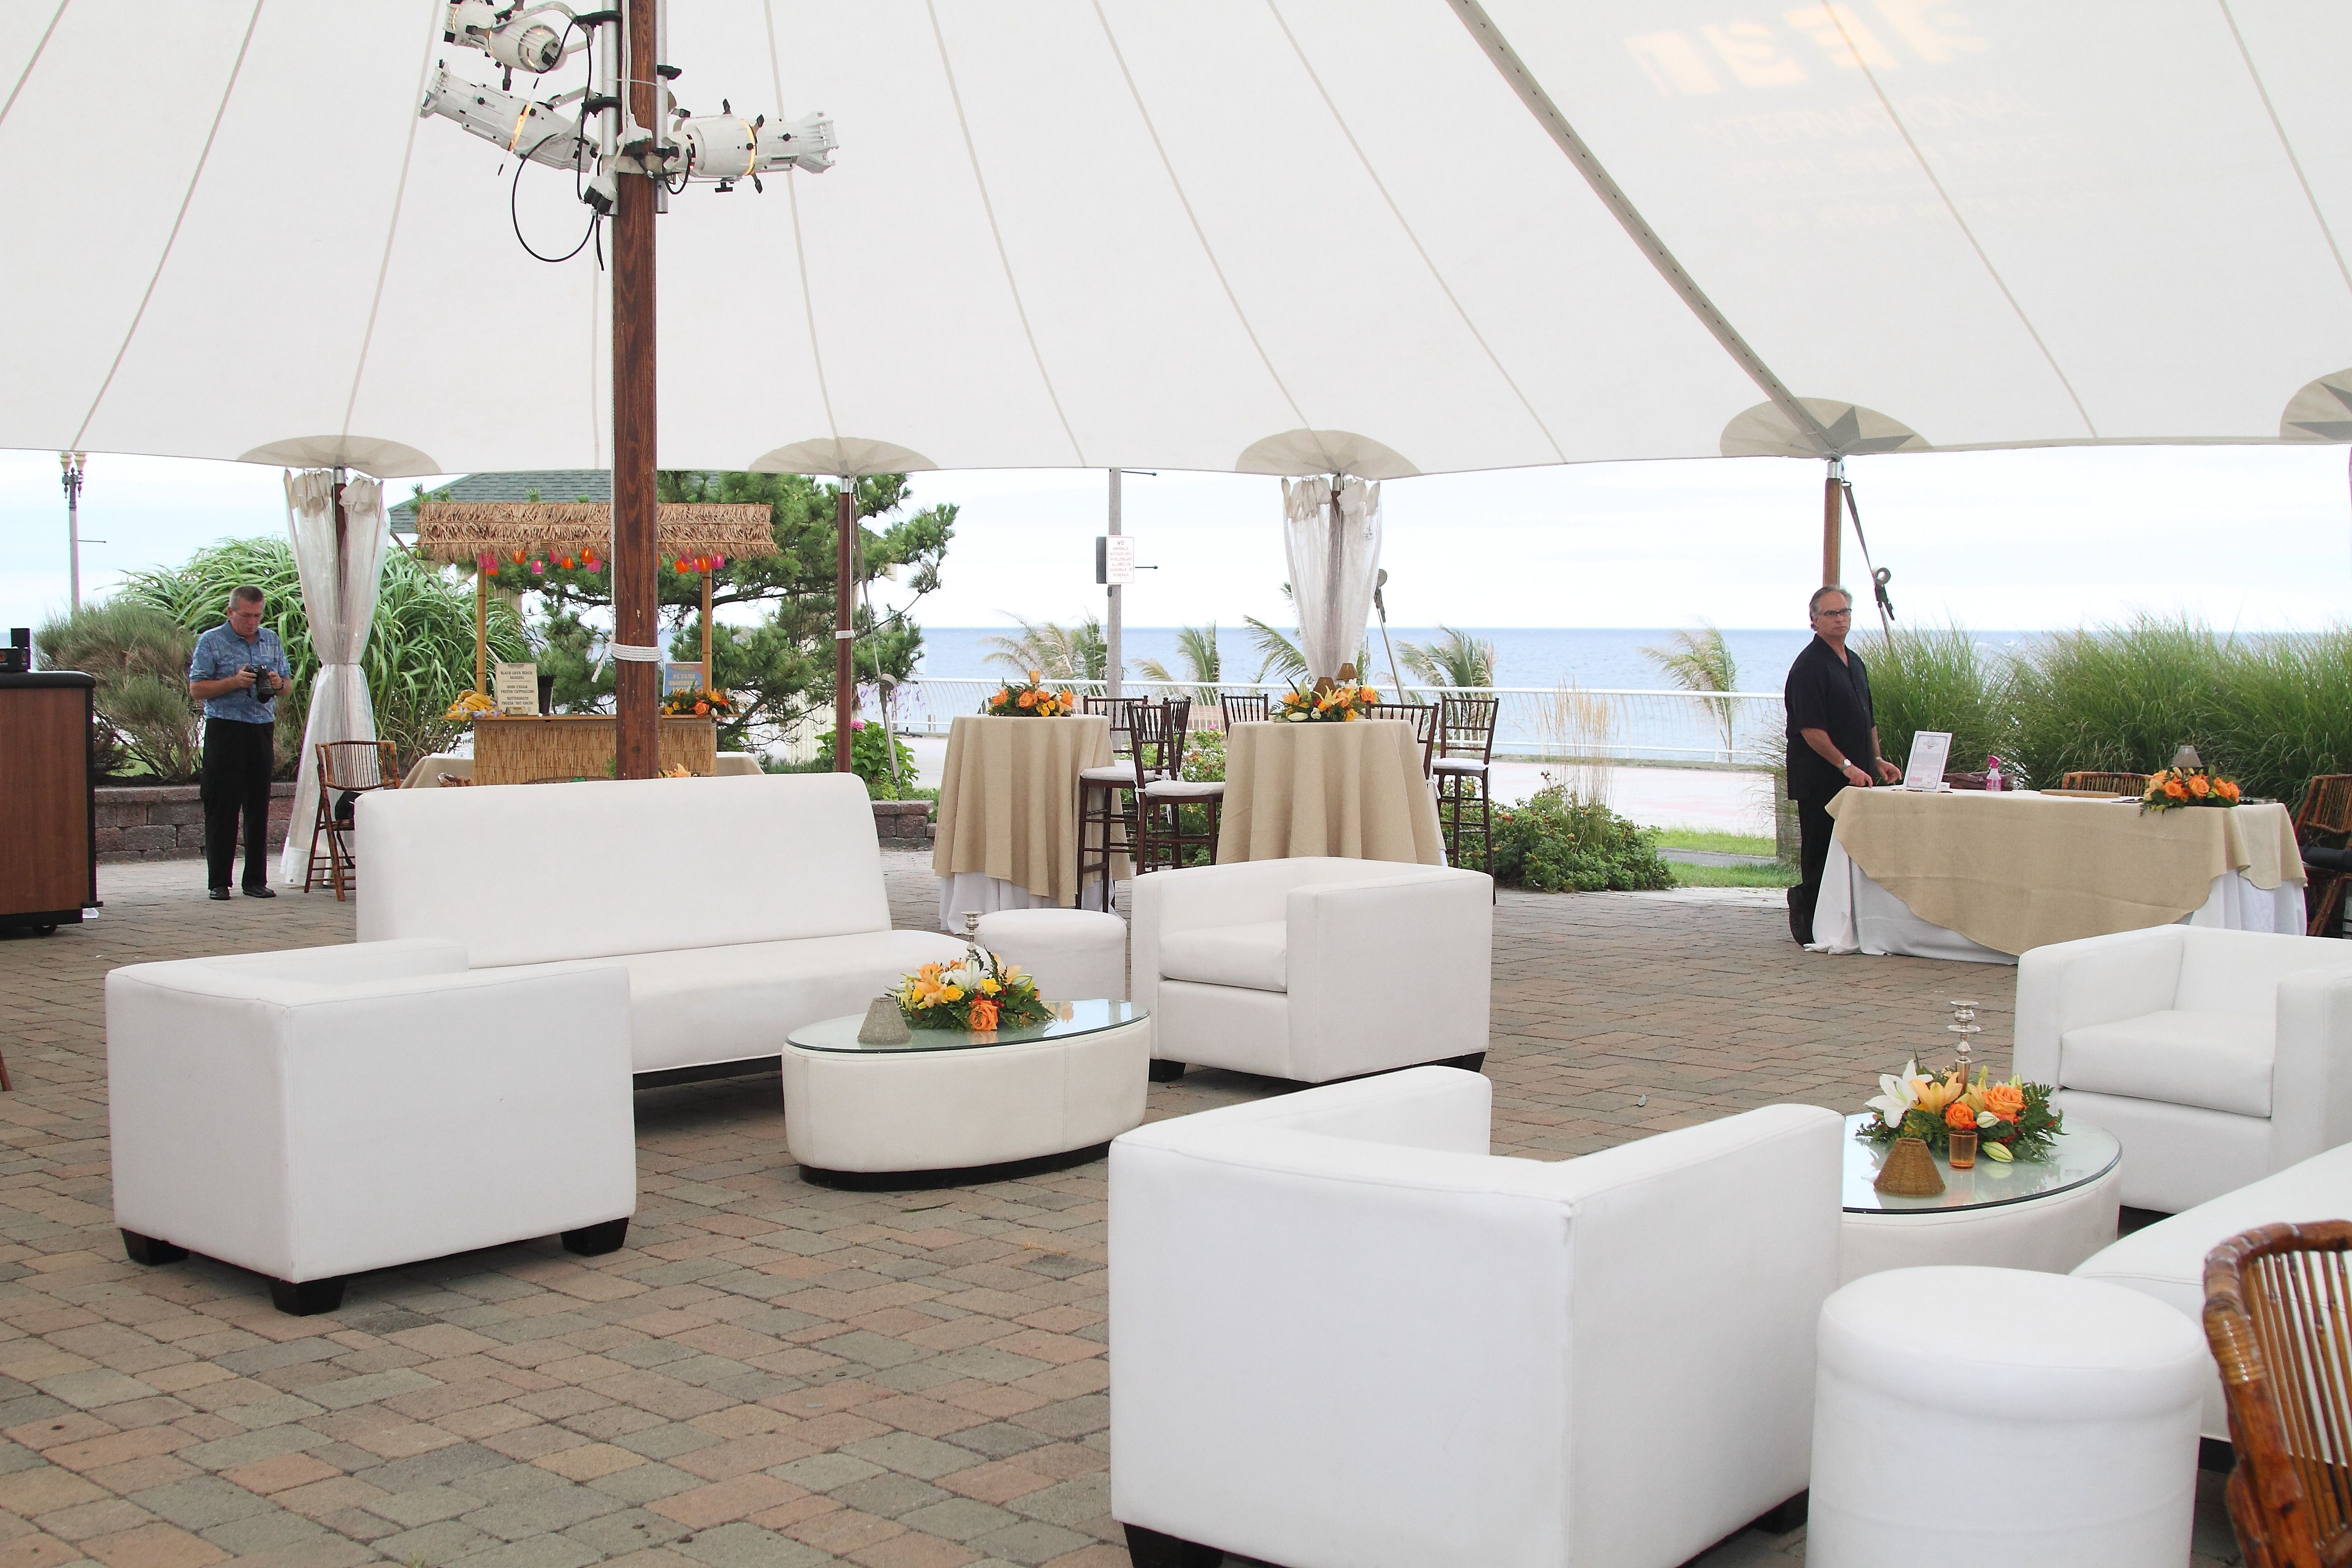 Havana Nights Beach Theme Party Event With Lounge Furniture By